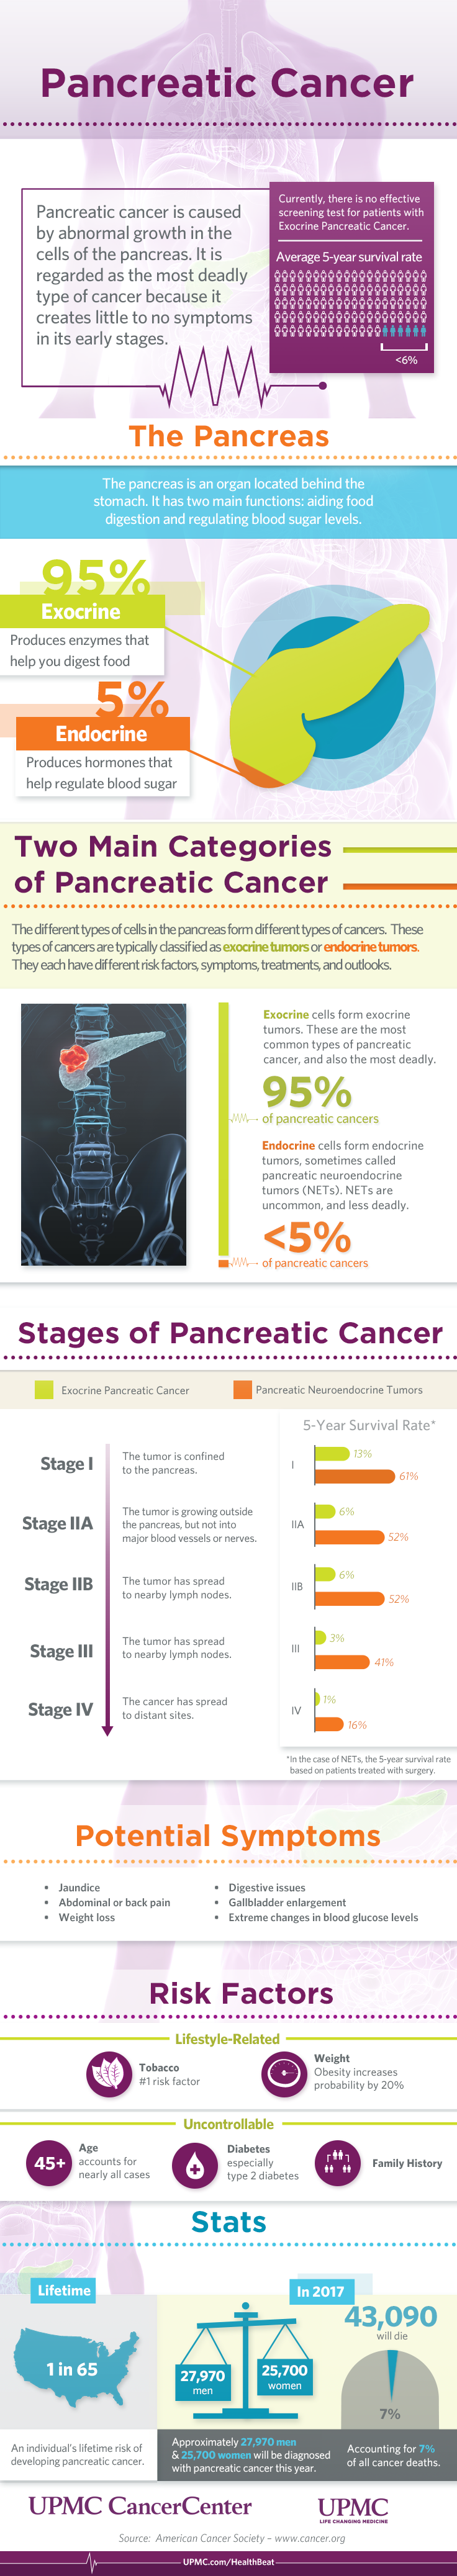 Learn more about pancreatic cancer